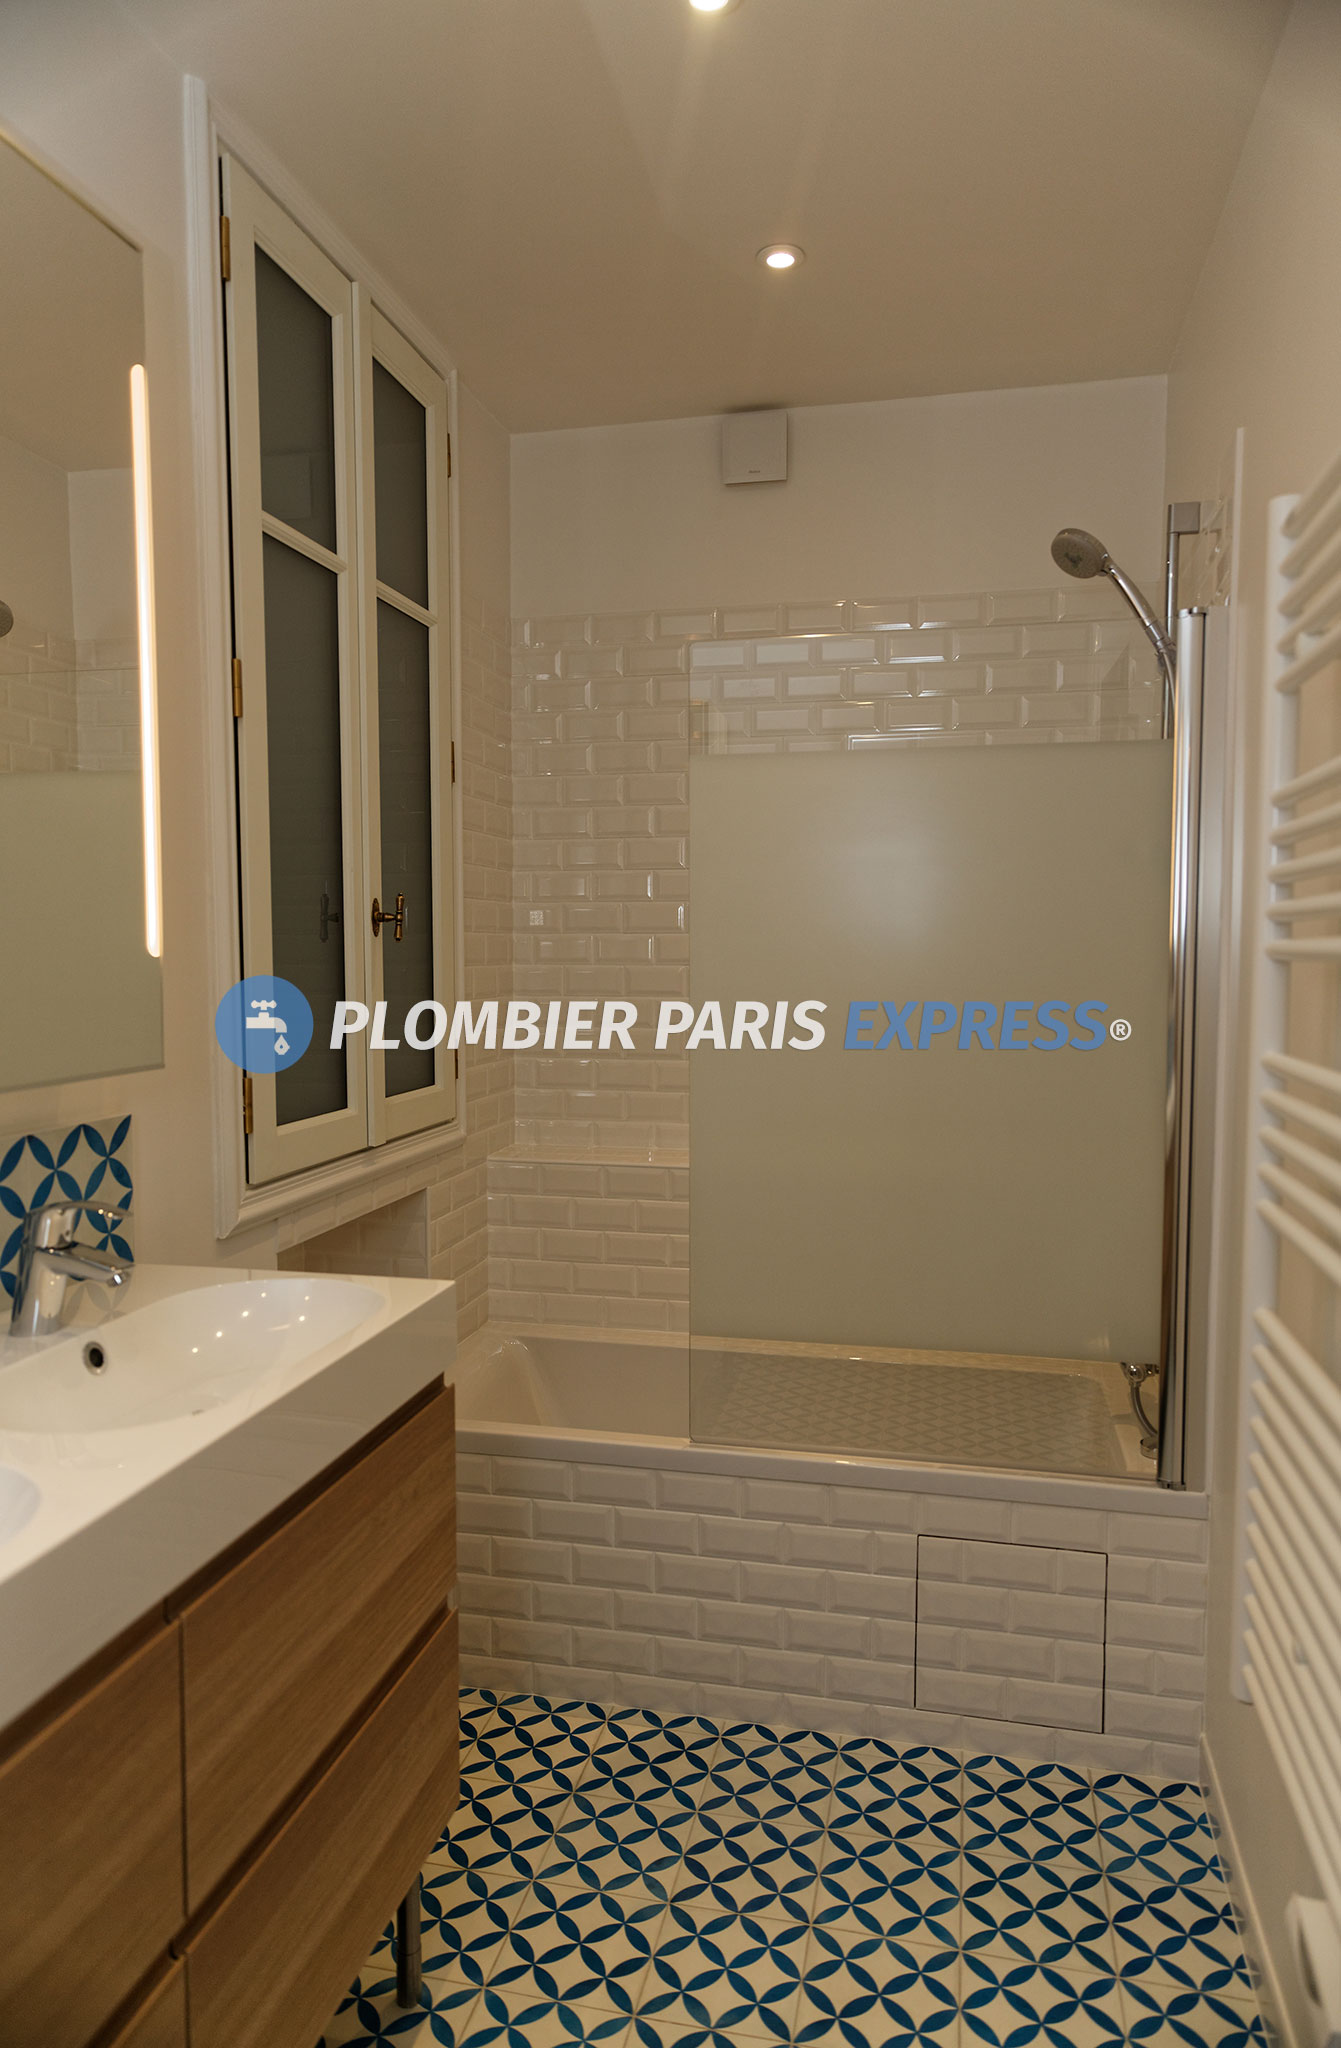 R novation salle de bain paris plombier paris express for Devis salle de bain paris